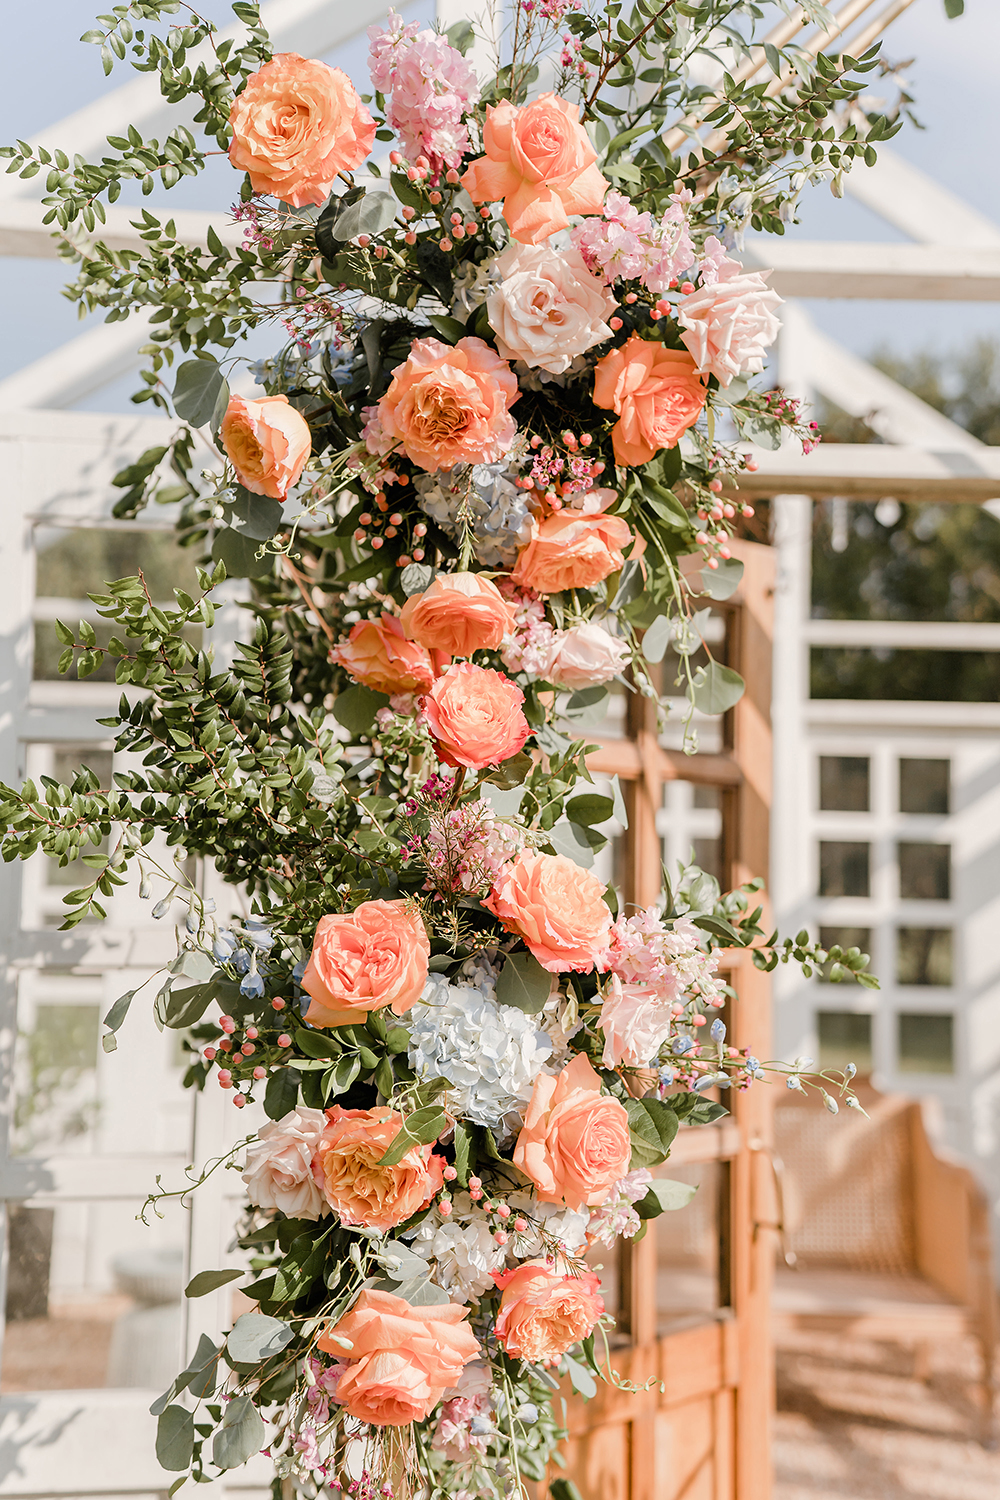 A floral arrangement alongside a white atrium made up of Silver dollar Eucalyptus, Huckleberry, Italian and Isralie Ruscus, Free Spirit Roses, Sweet Eskimo Roses, LightBlue Delphinium, Raspberry Wax Flowers, Pink Stock, Coral Hyperium Berries, and Light Blue Hydrangea.